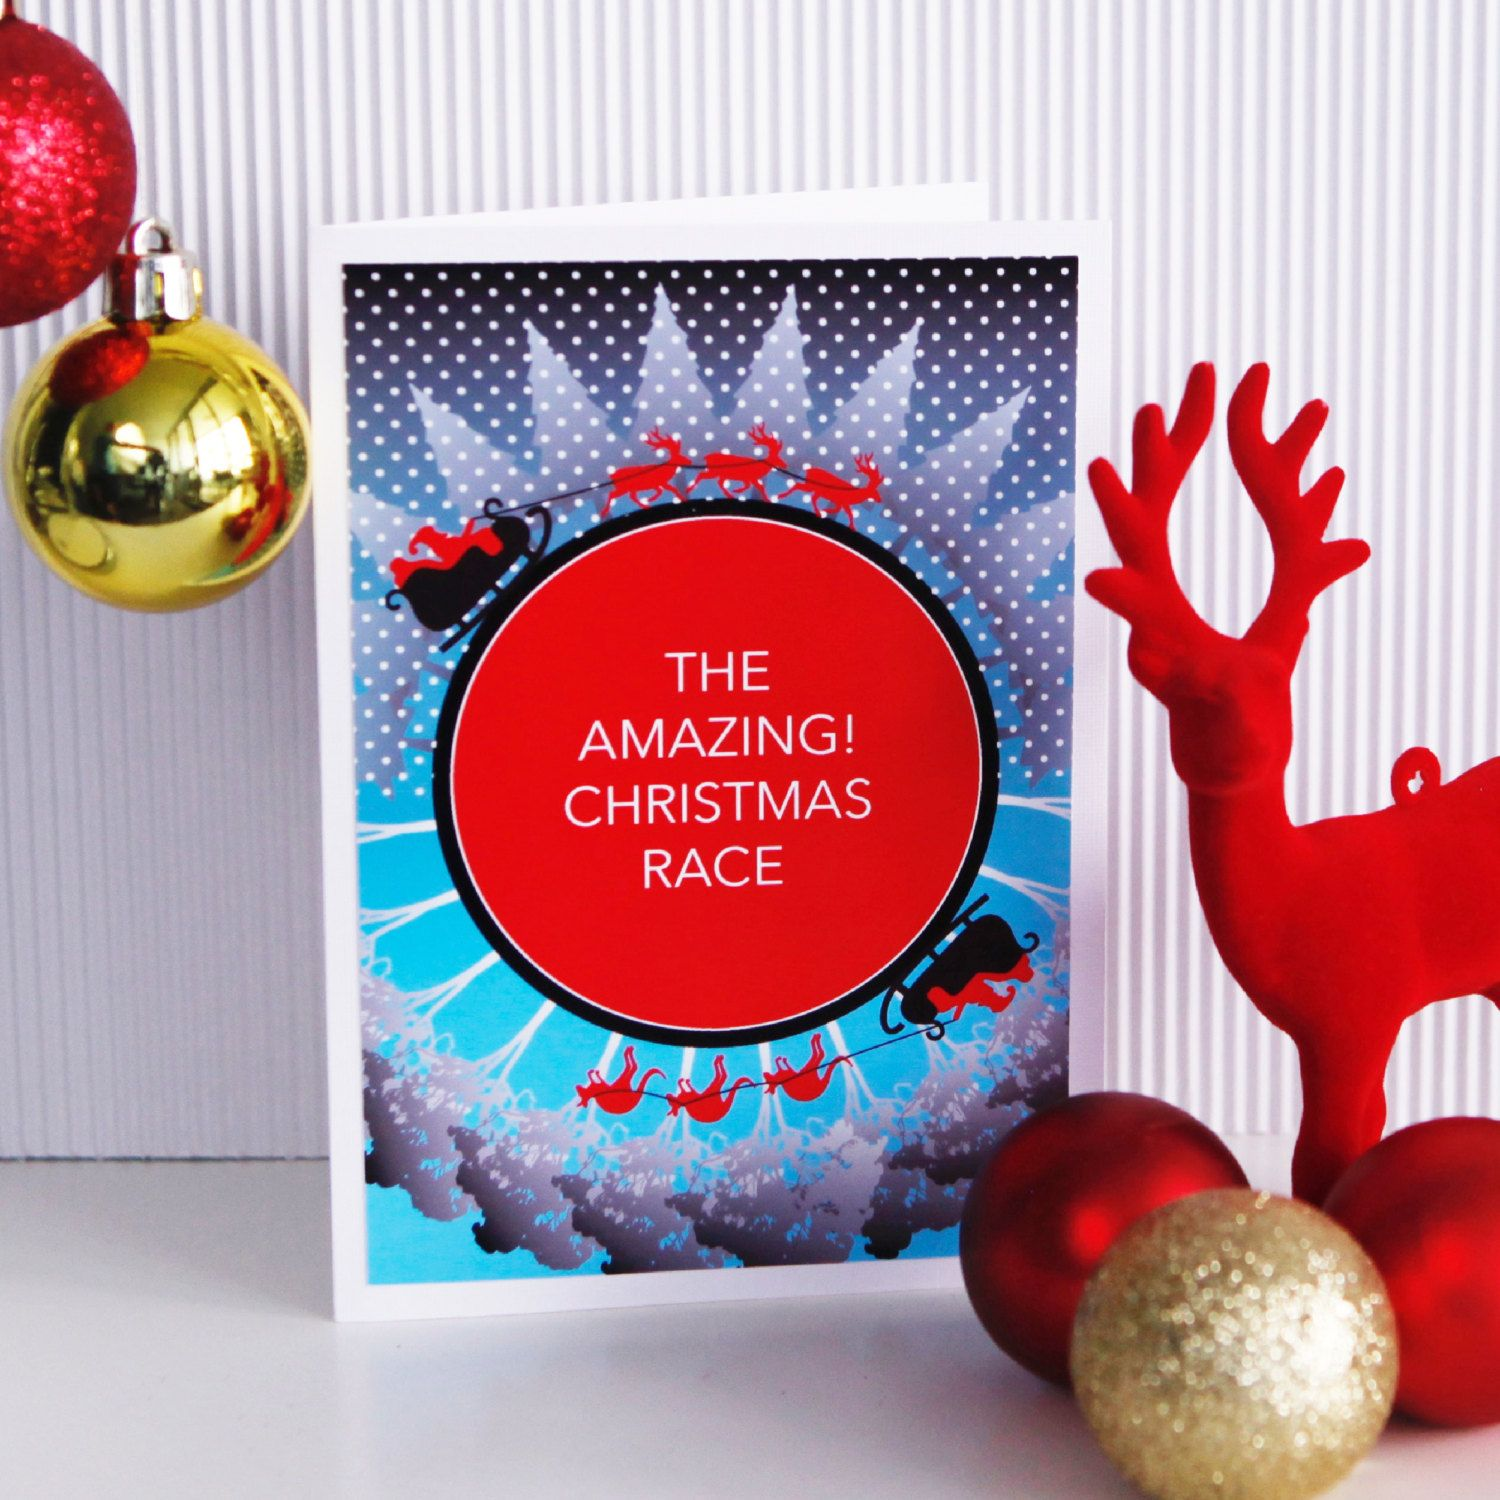 The amazing christmas race card funny xmas card santa reindeer christmas race card funny xmas card santa reindeer kangaroo australian christmas blank or edit personalised message options on etsy kristyandbryce Images